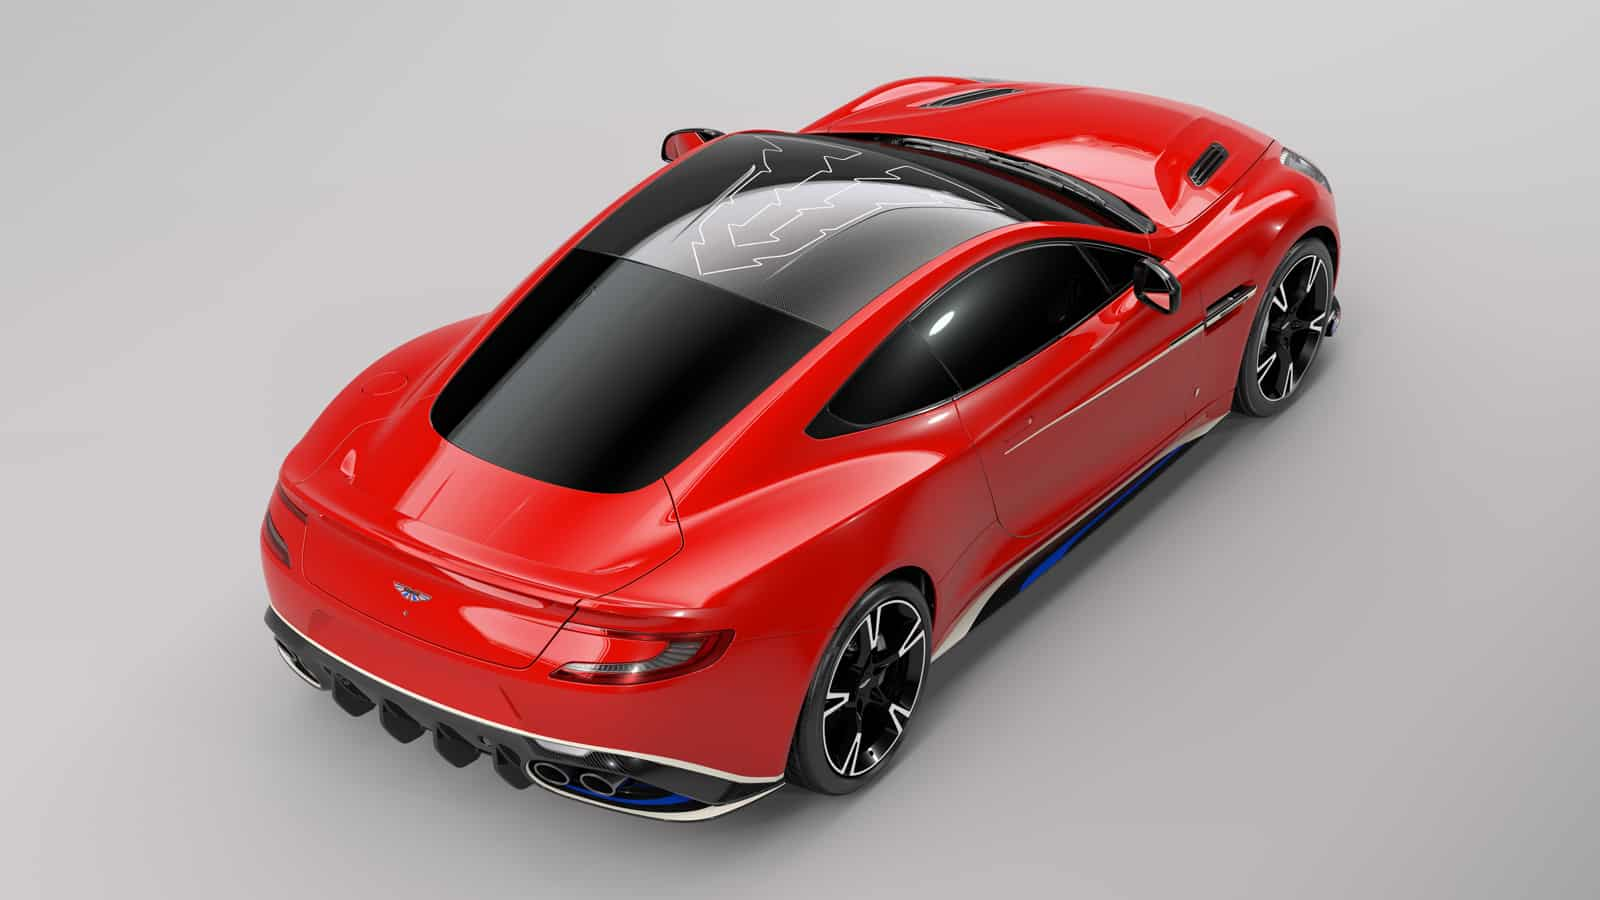 Aston Martin Vanquish S Red Arrows Edition-3